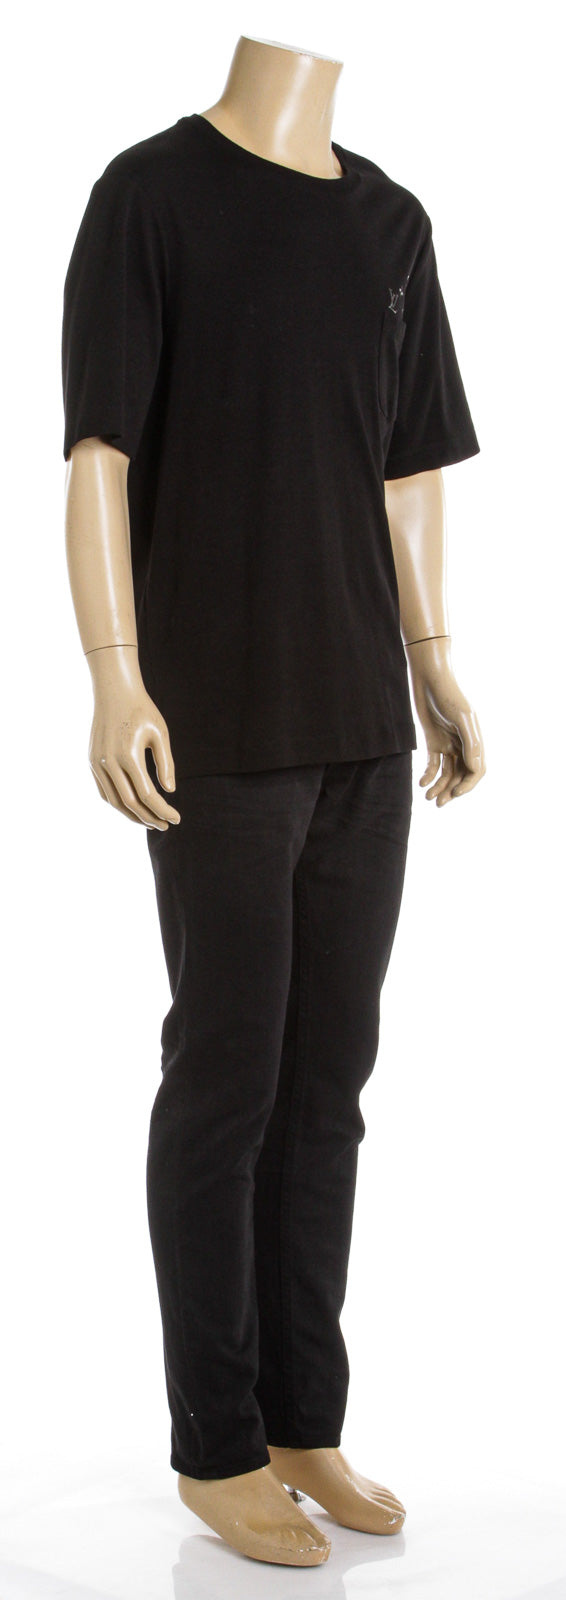 Louis Vuitton Black Cotton Short Sleeve T-Shirt (Size XXL)